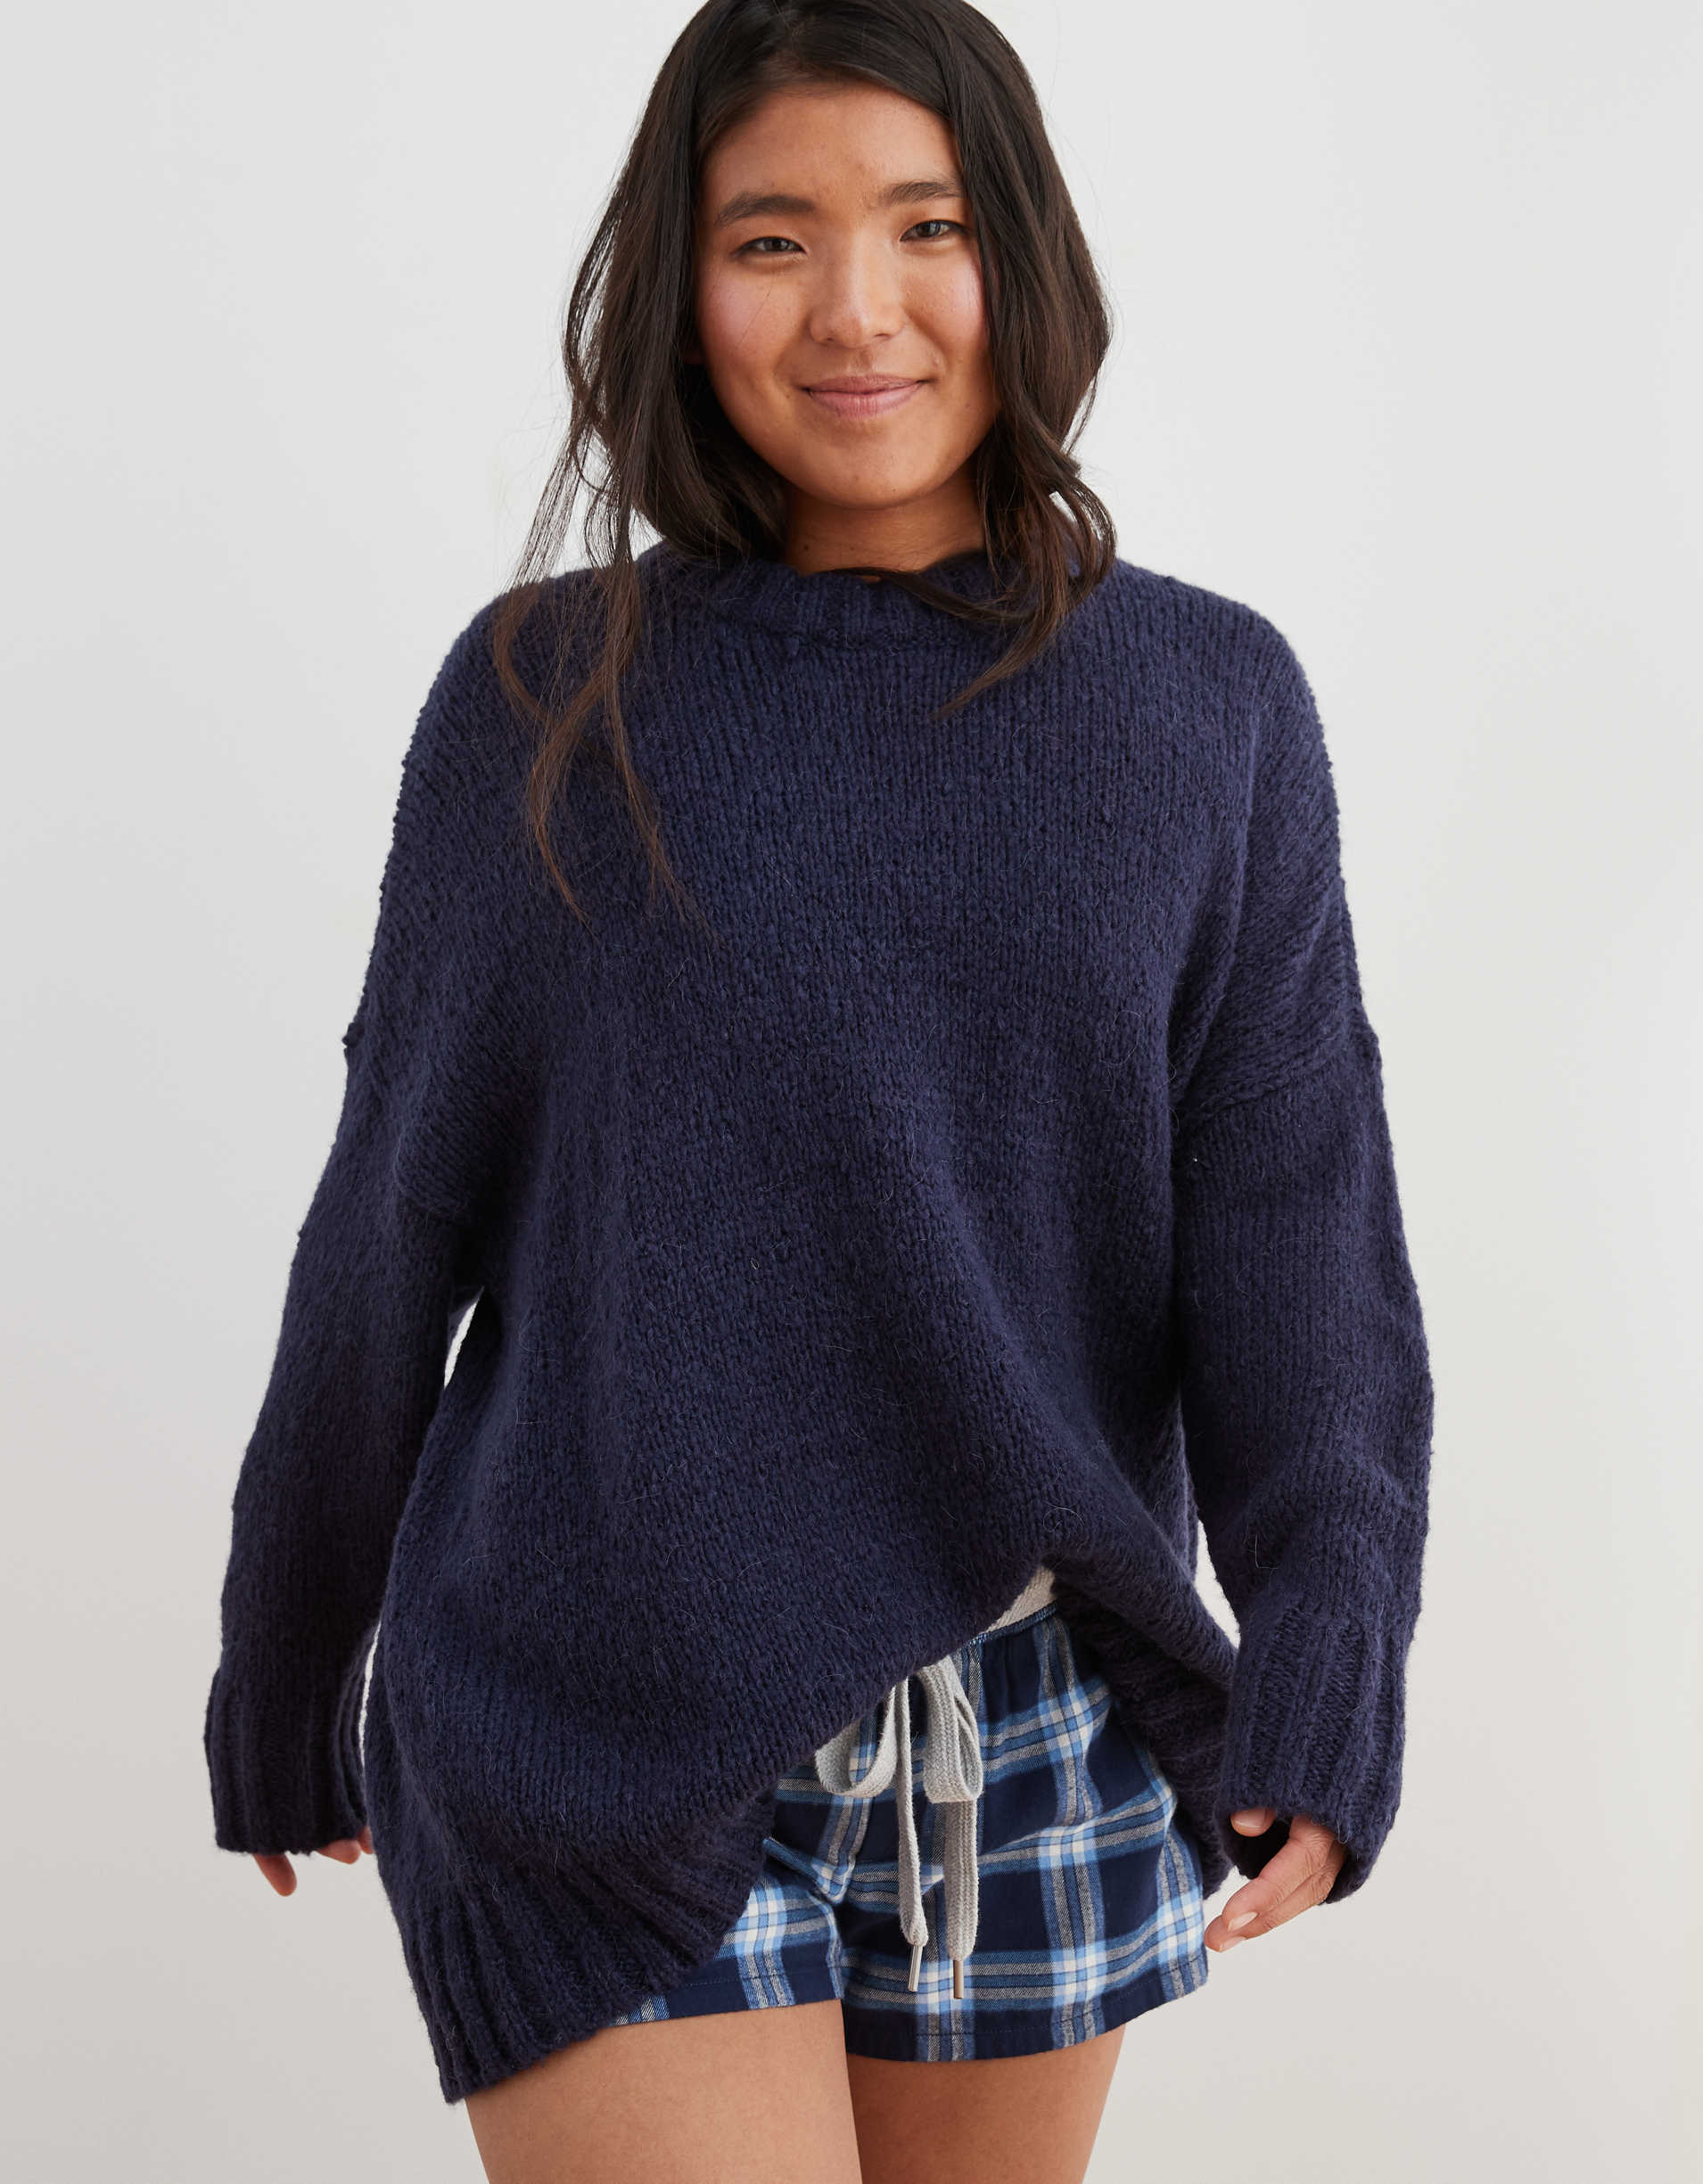 Aerie Big Sky Oversized Sweater